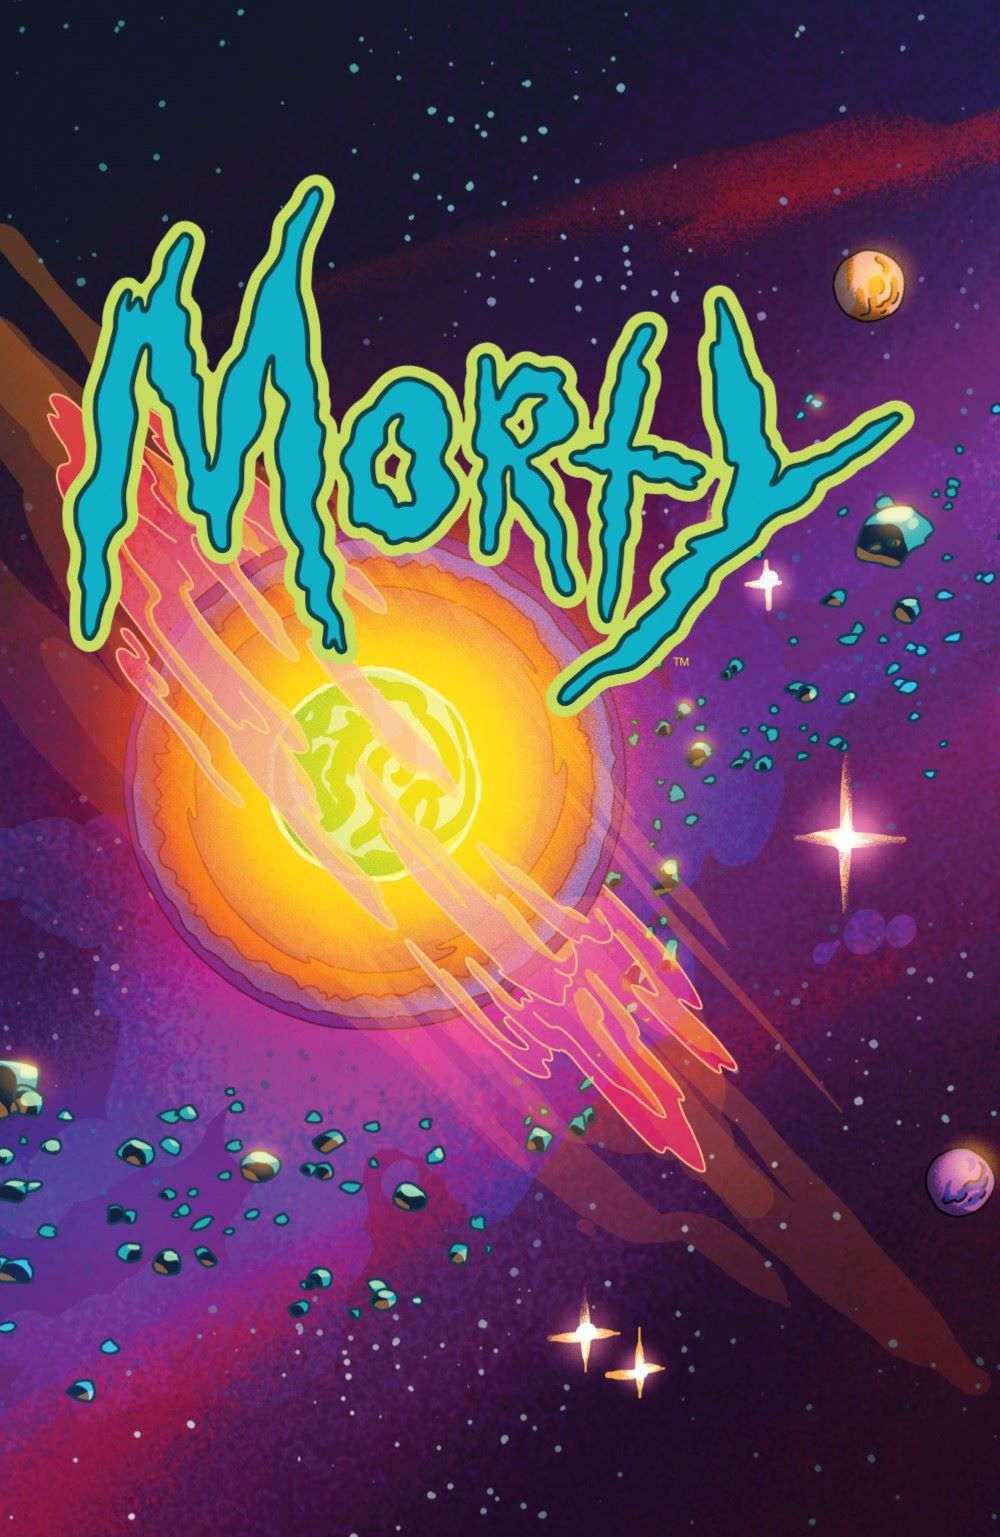 RICKMORTY-V12-TPB-REFERENCE-004 ComicList Previews: RICK AND MORTY VOLUME 12 TP